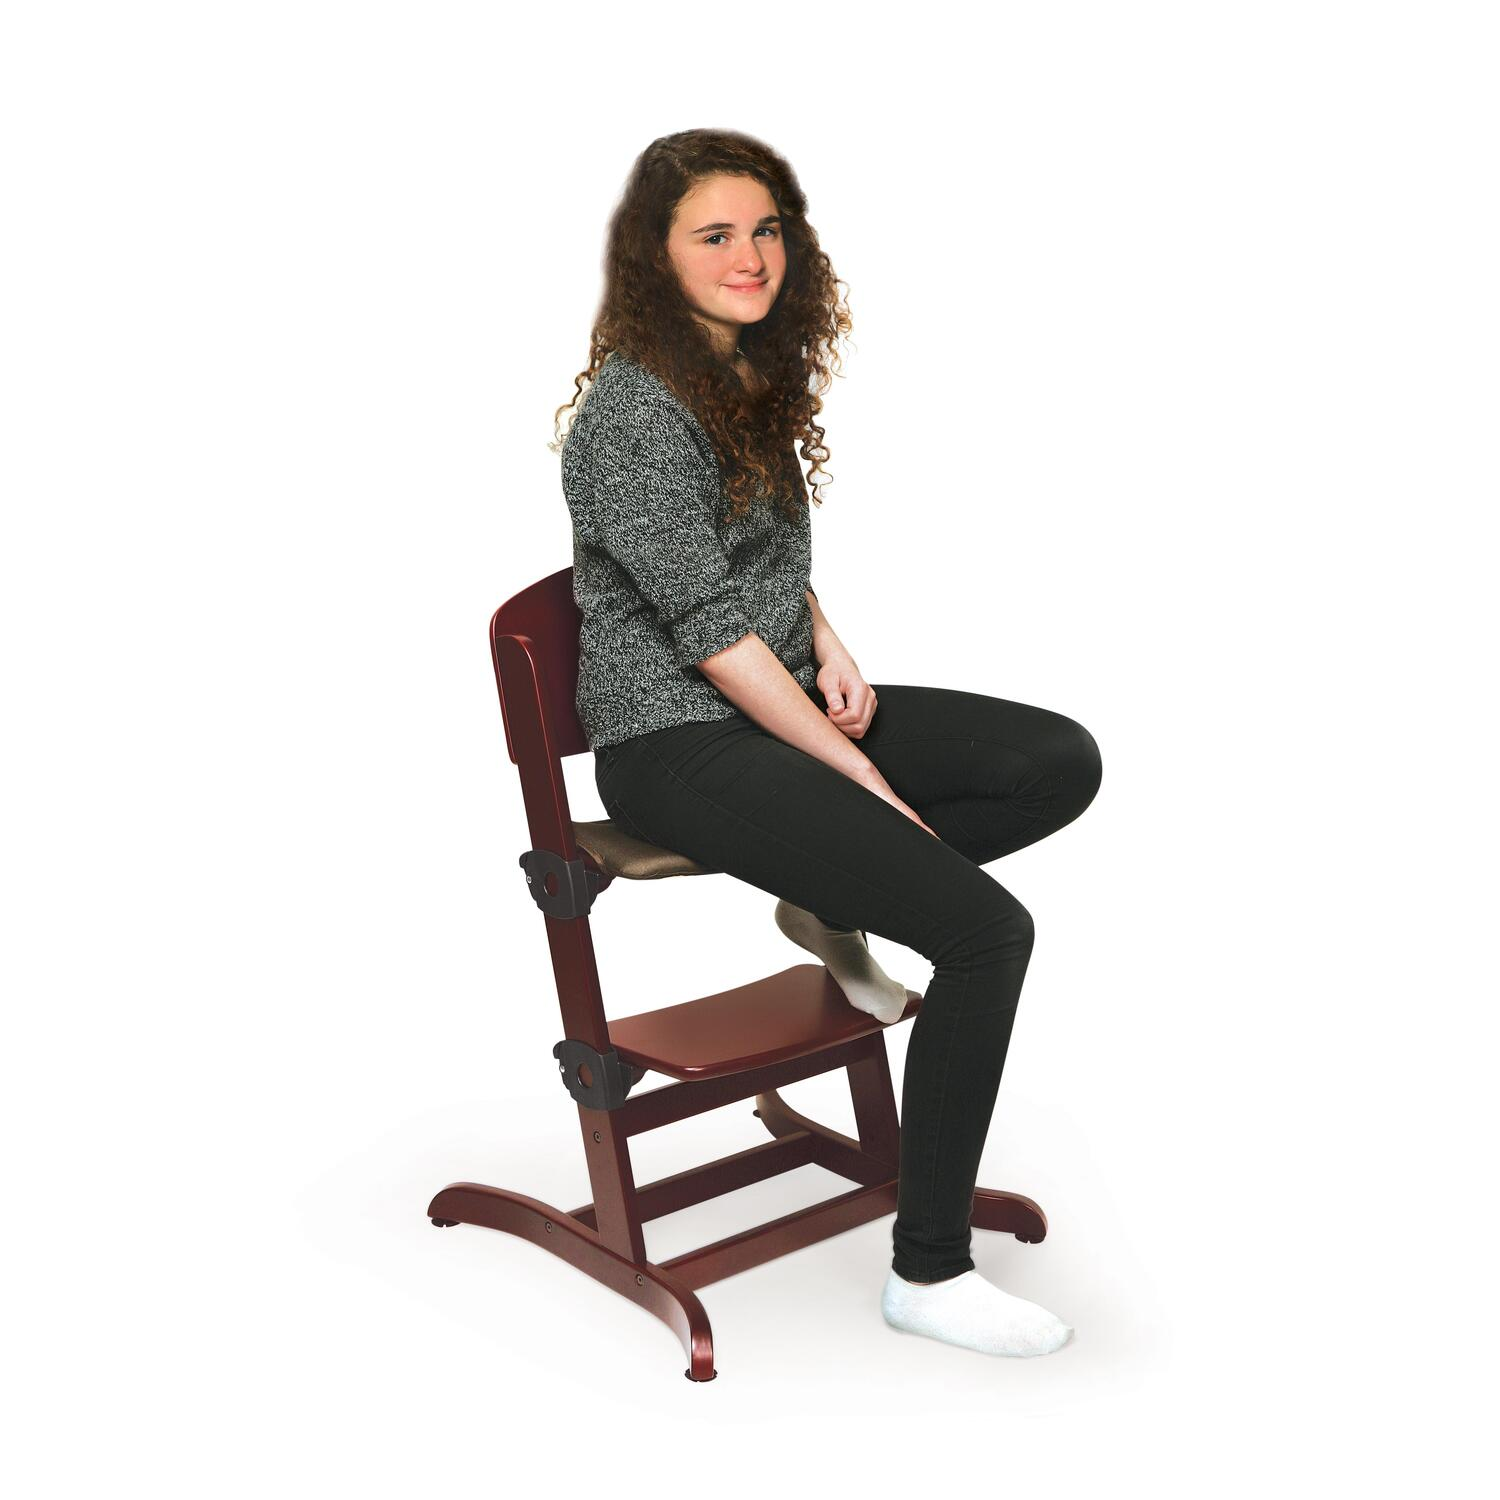 Evolve Wood High Chair With Tray Ojcommerce